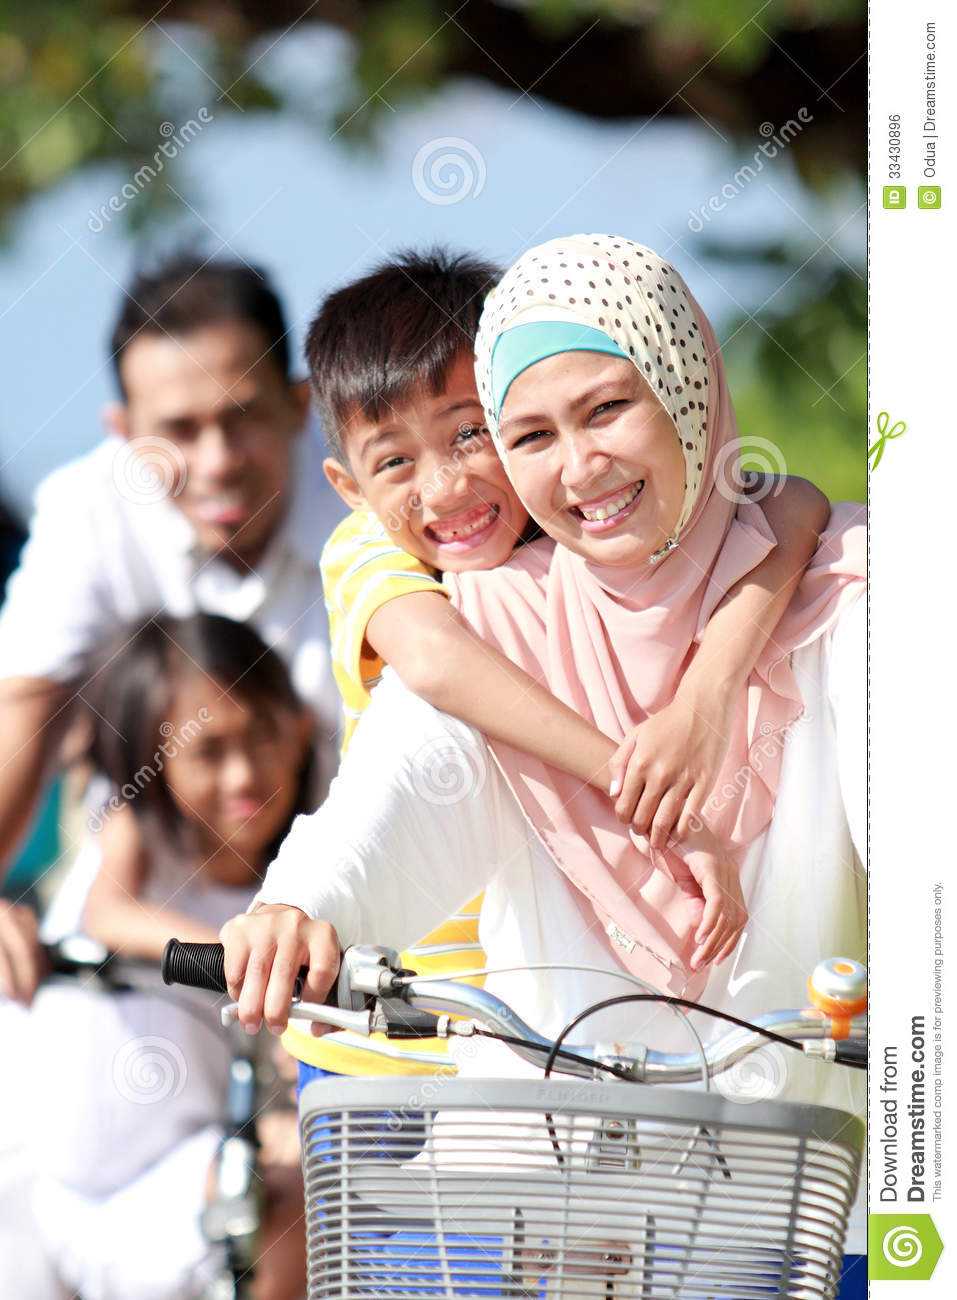 Portrait Of Happy Muslim Family Riding Bikes Together